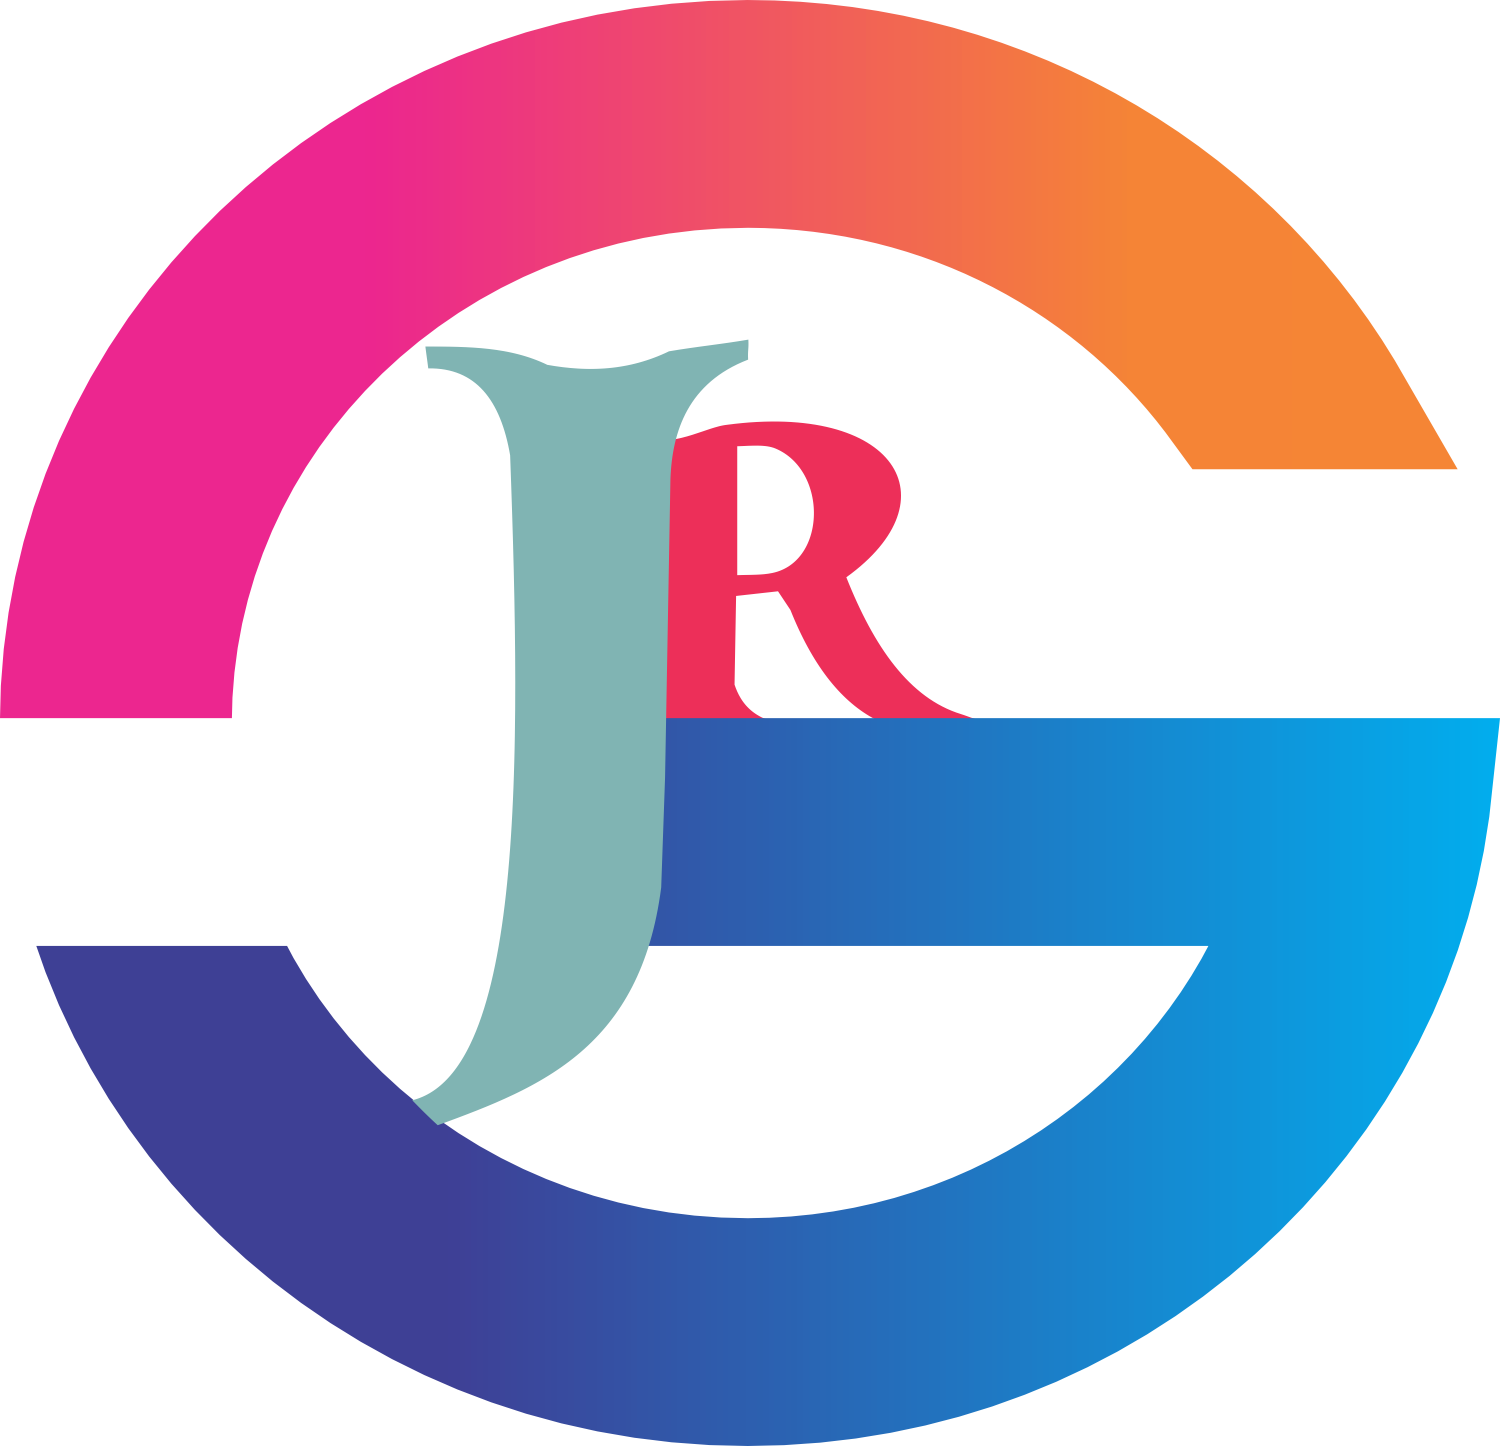 JRG Software & Technologies